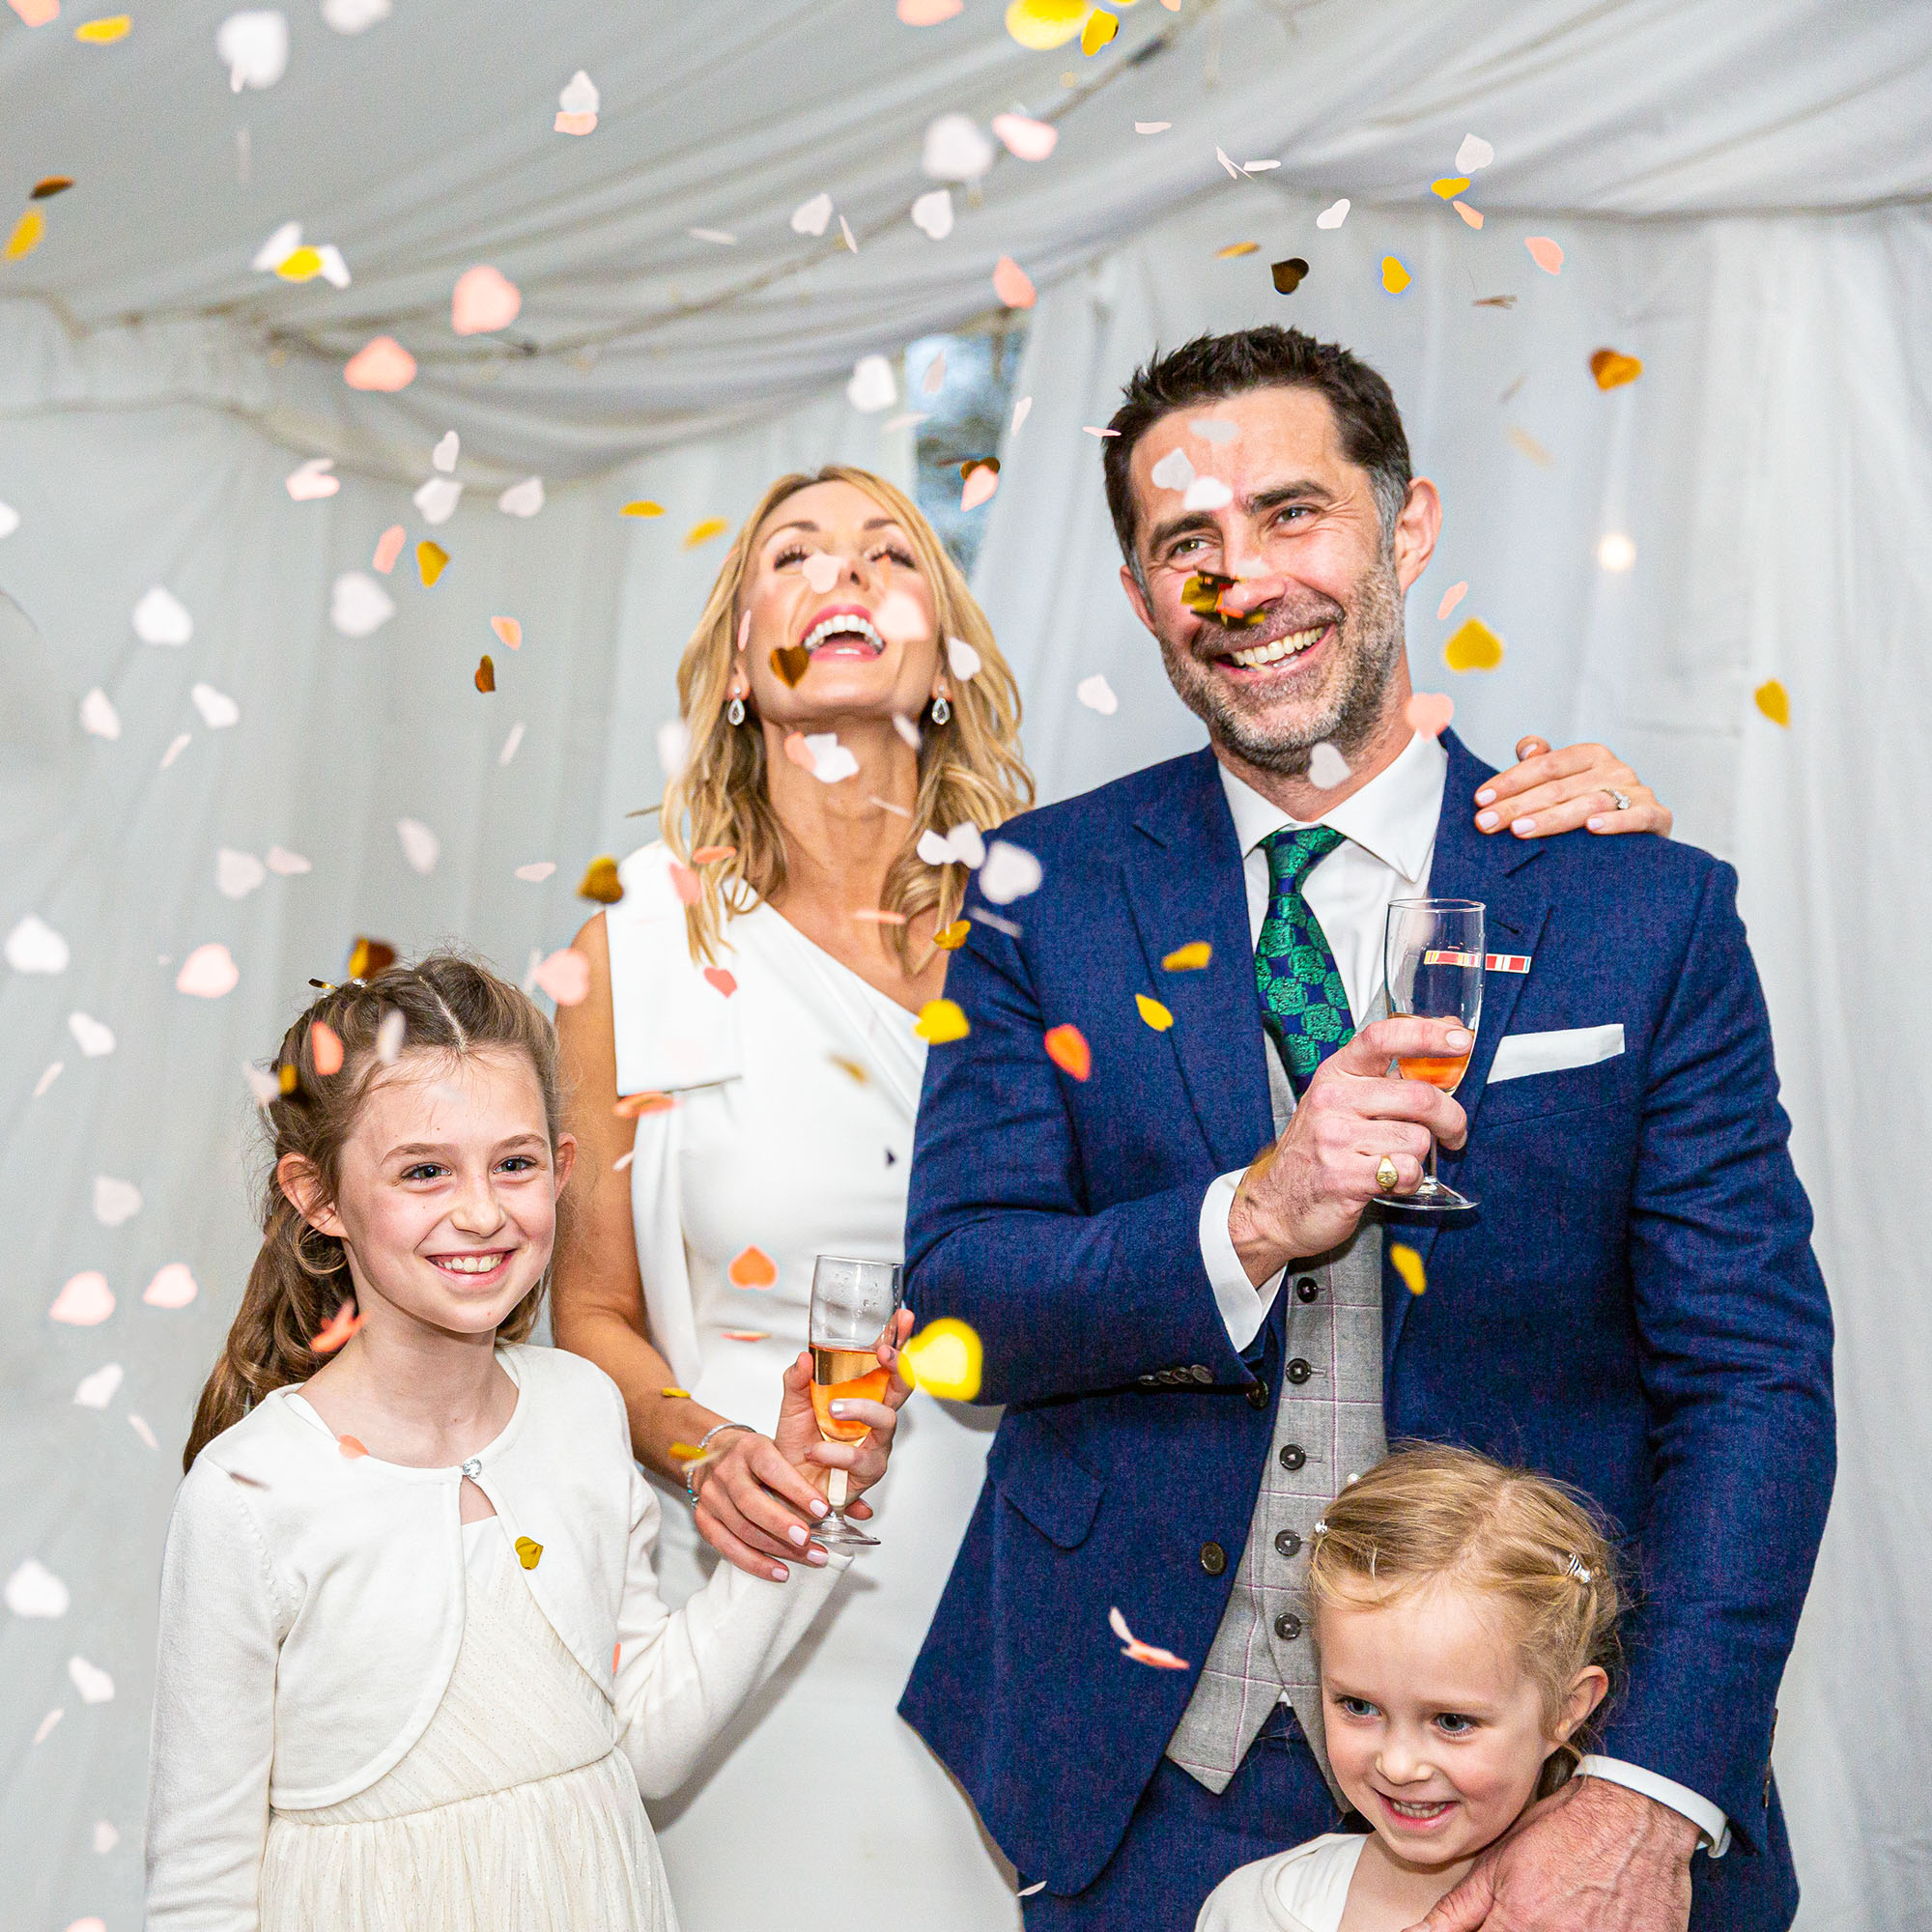 Bride, Groom and children showered with confetti.